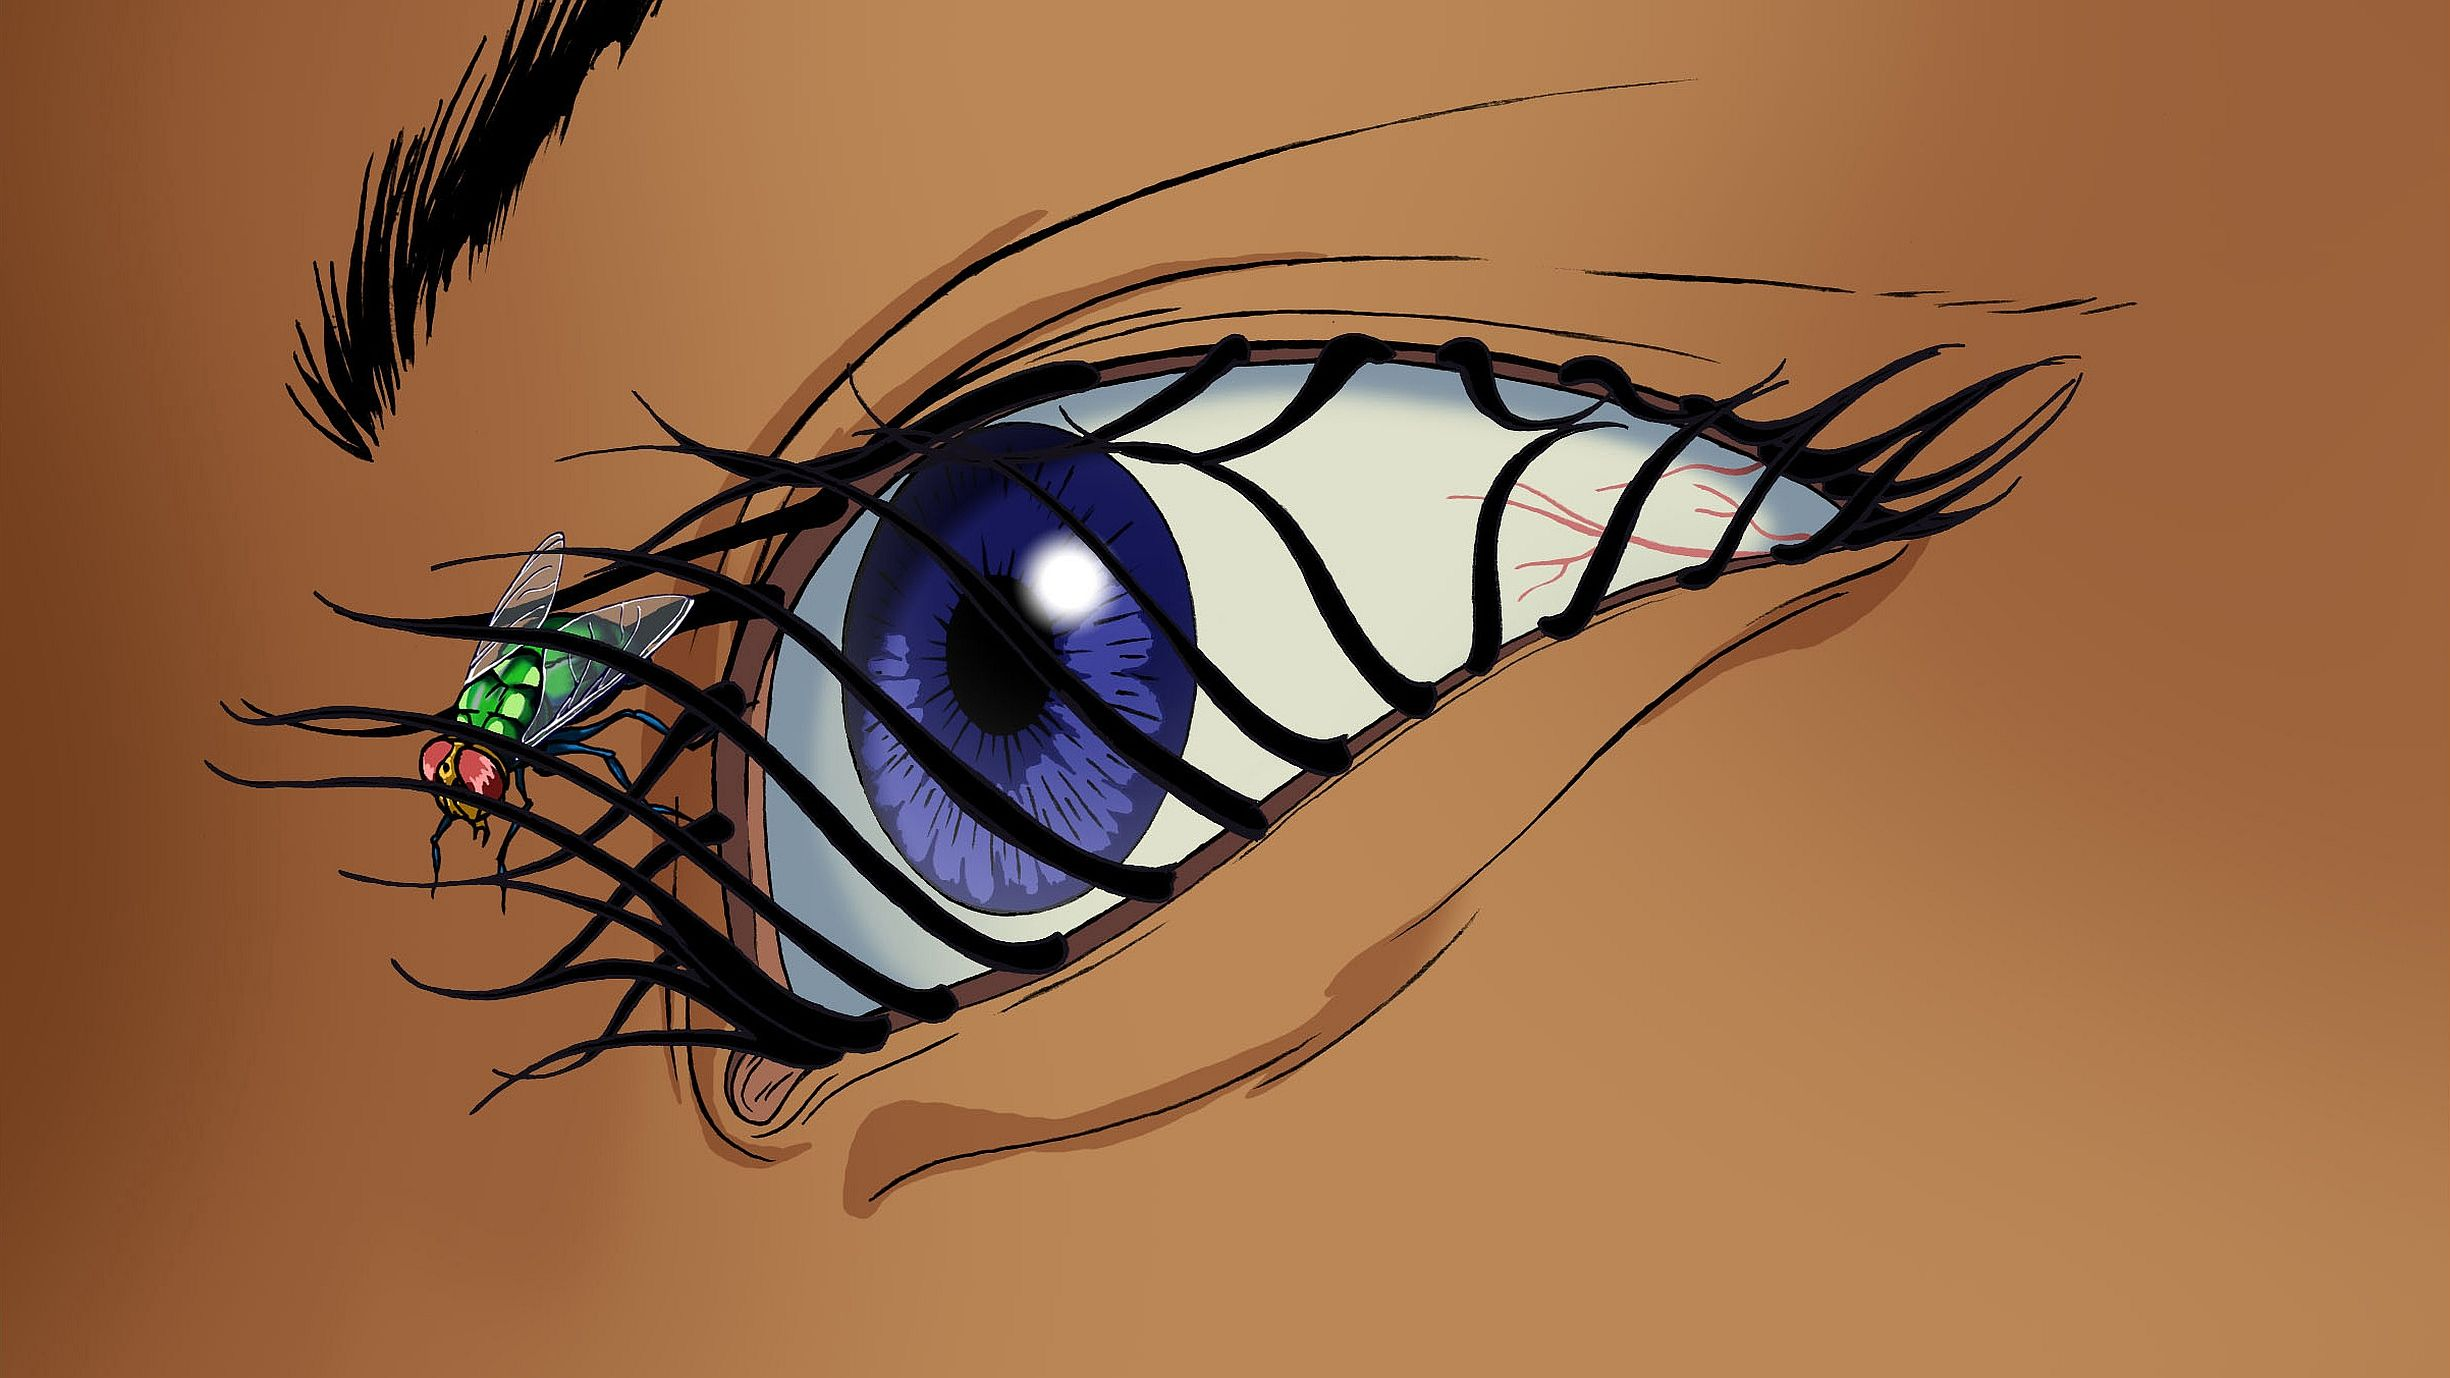 aeon flux cartoon | Aeon Flux Computer Wallpapers, Desktop ...